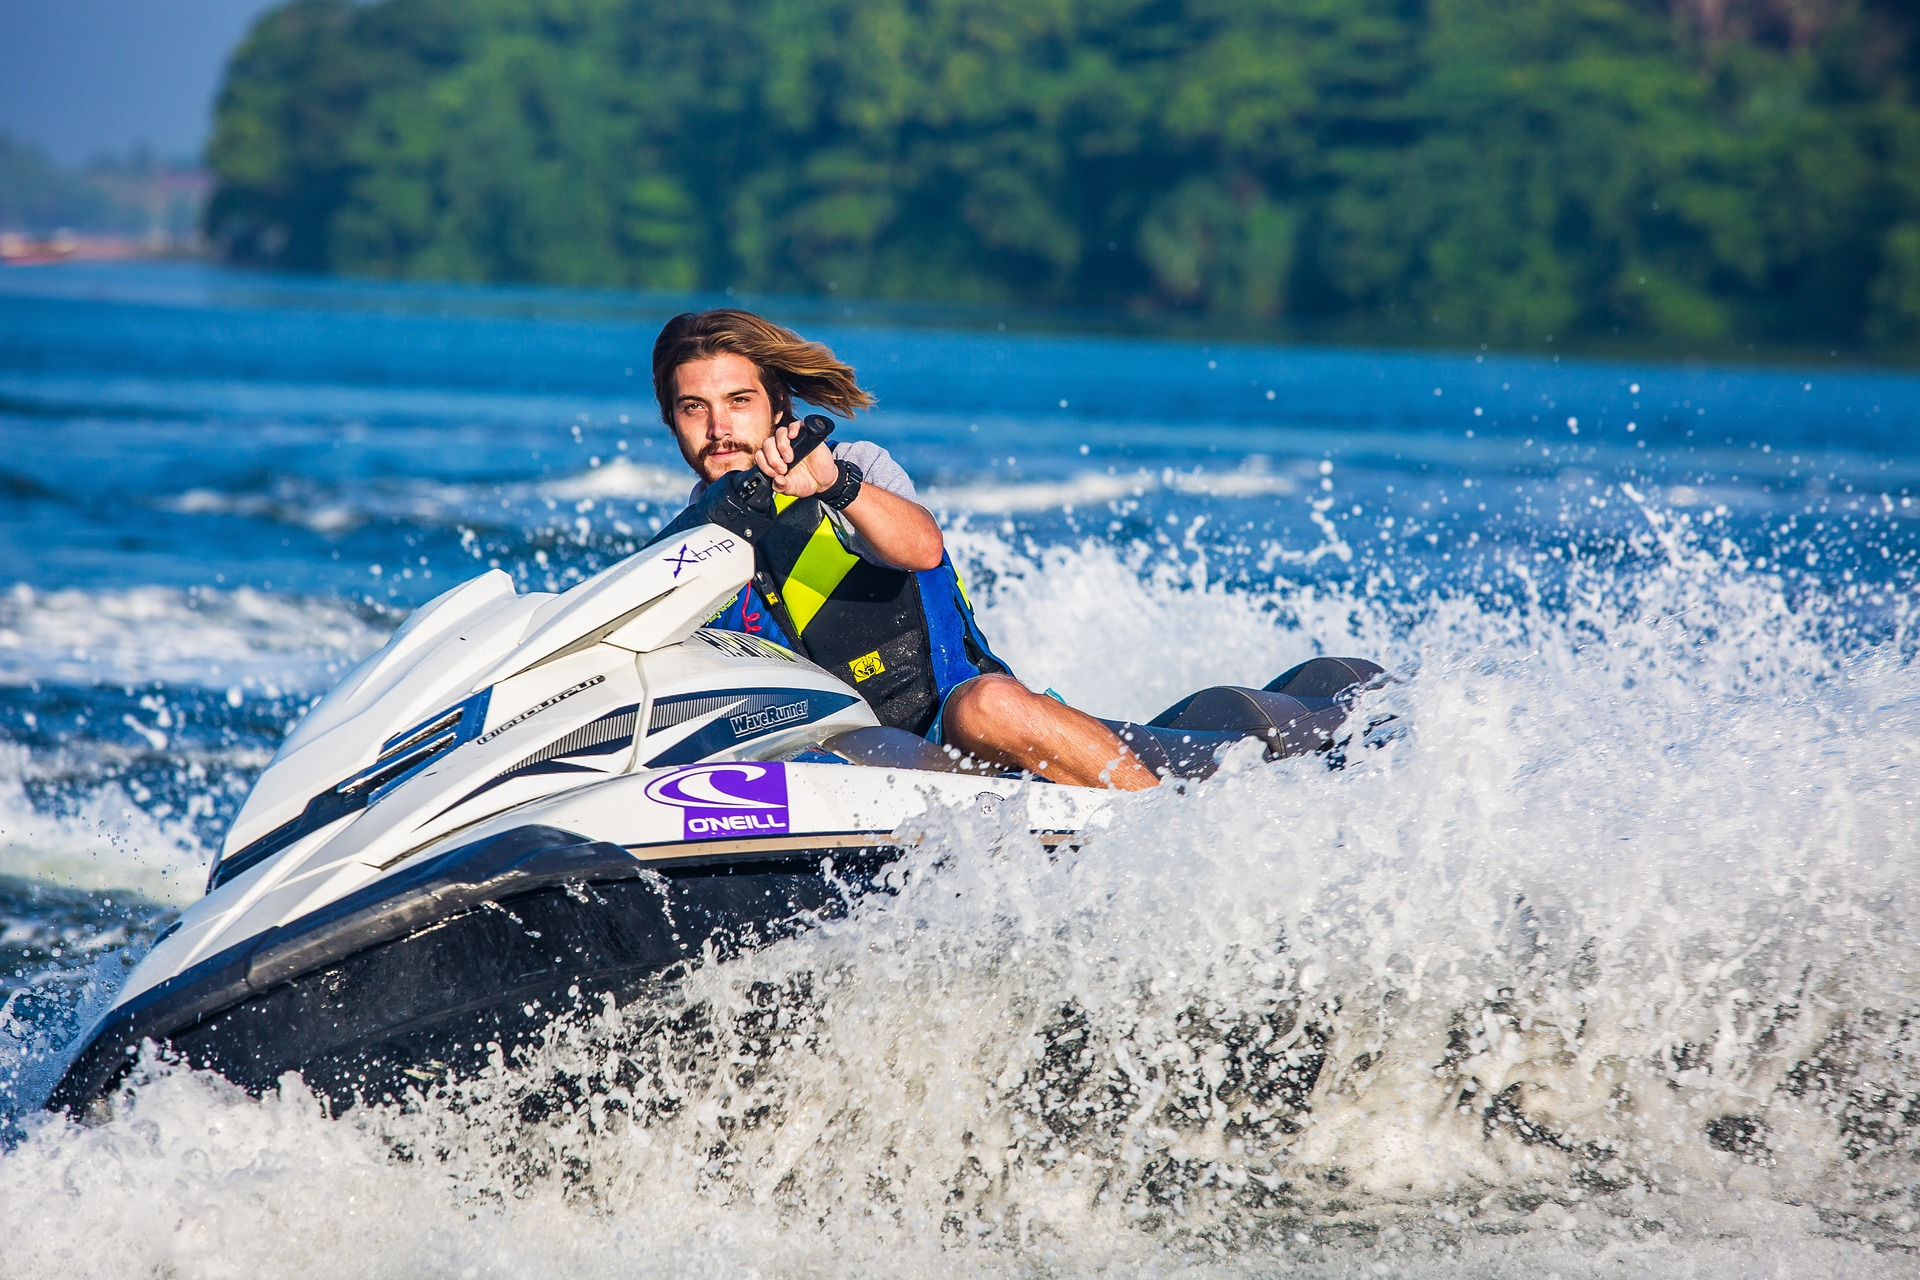 Experience Jet Skiing At Myrtle Park.